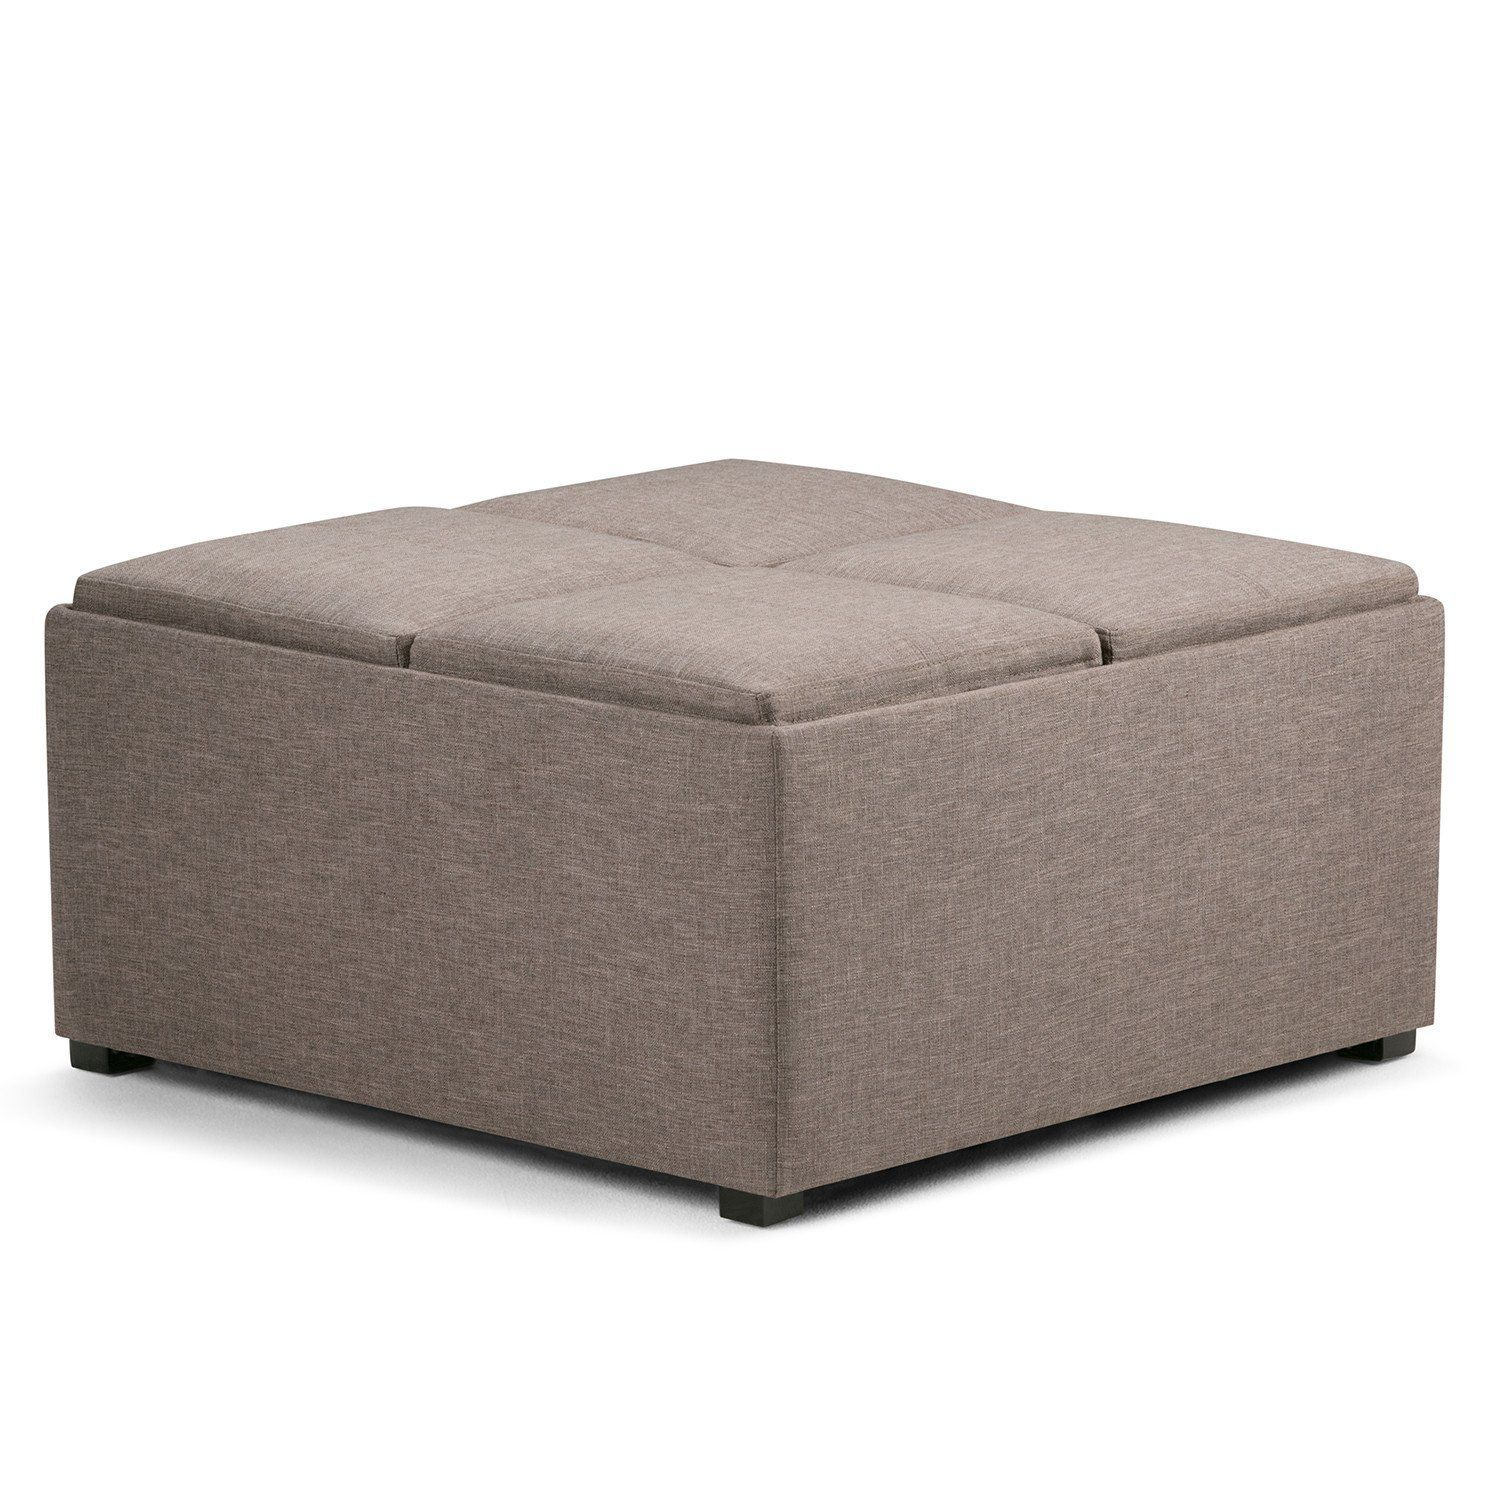 Avalon Faux Leather Square Coffee Table Storage Ottoman